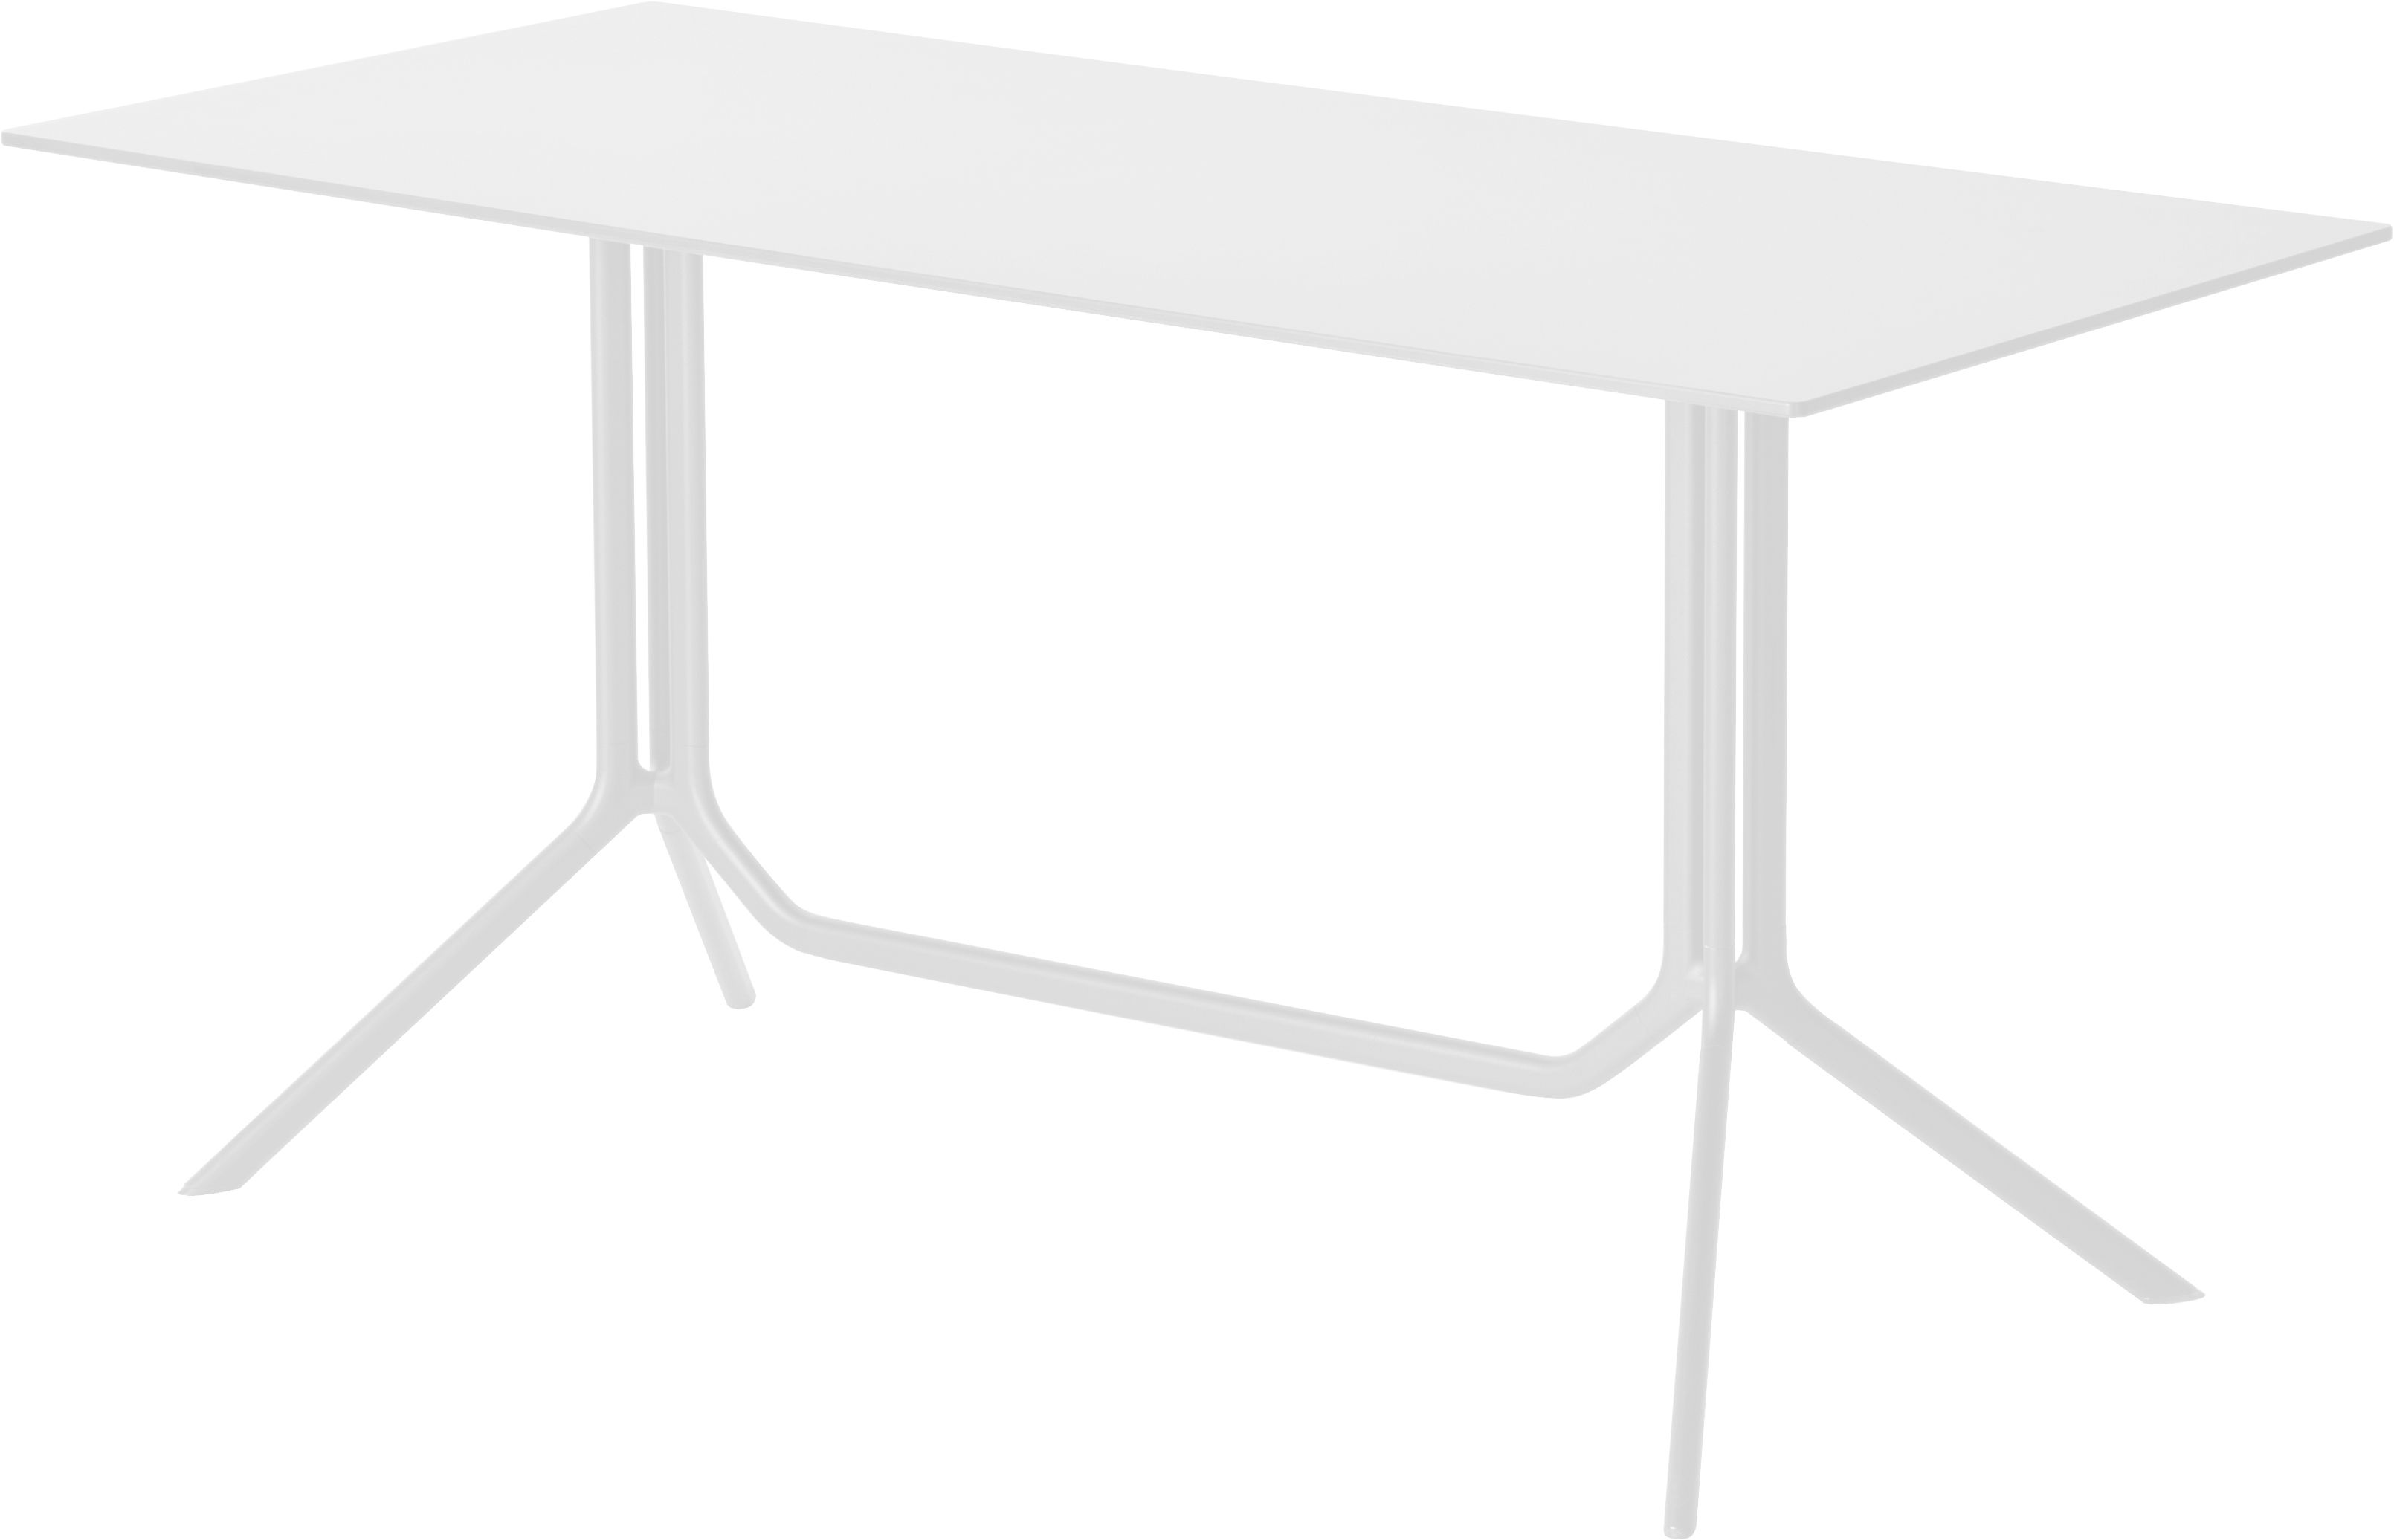 Outdoor - Garden Tables - Poule double Rectangular table - 150 x 70 cm - Fixed top by Kristalia - Pure white laminated - Lacquered aluminium, Stratified